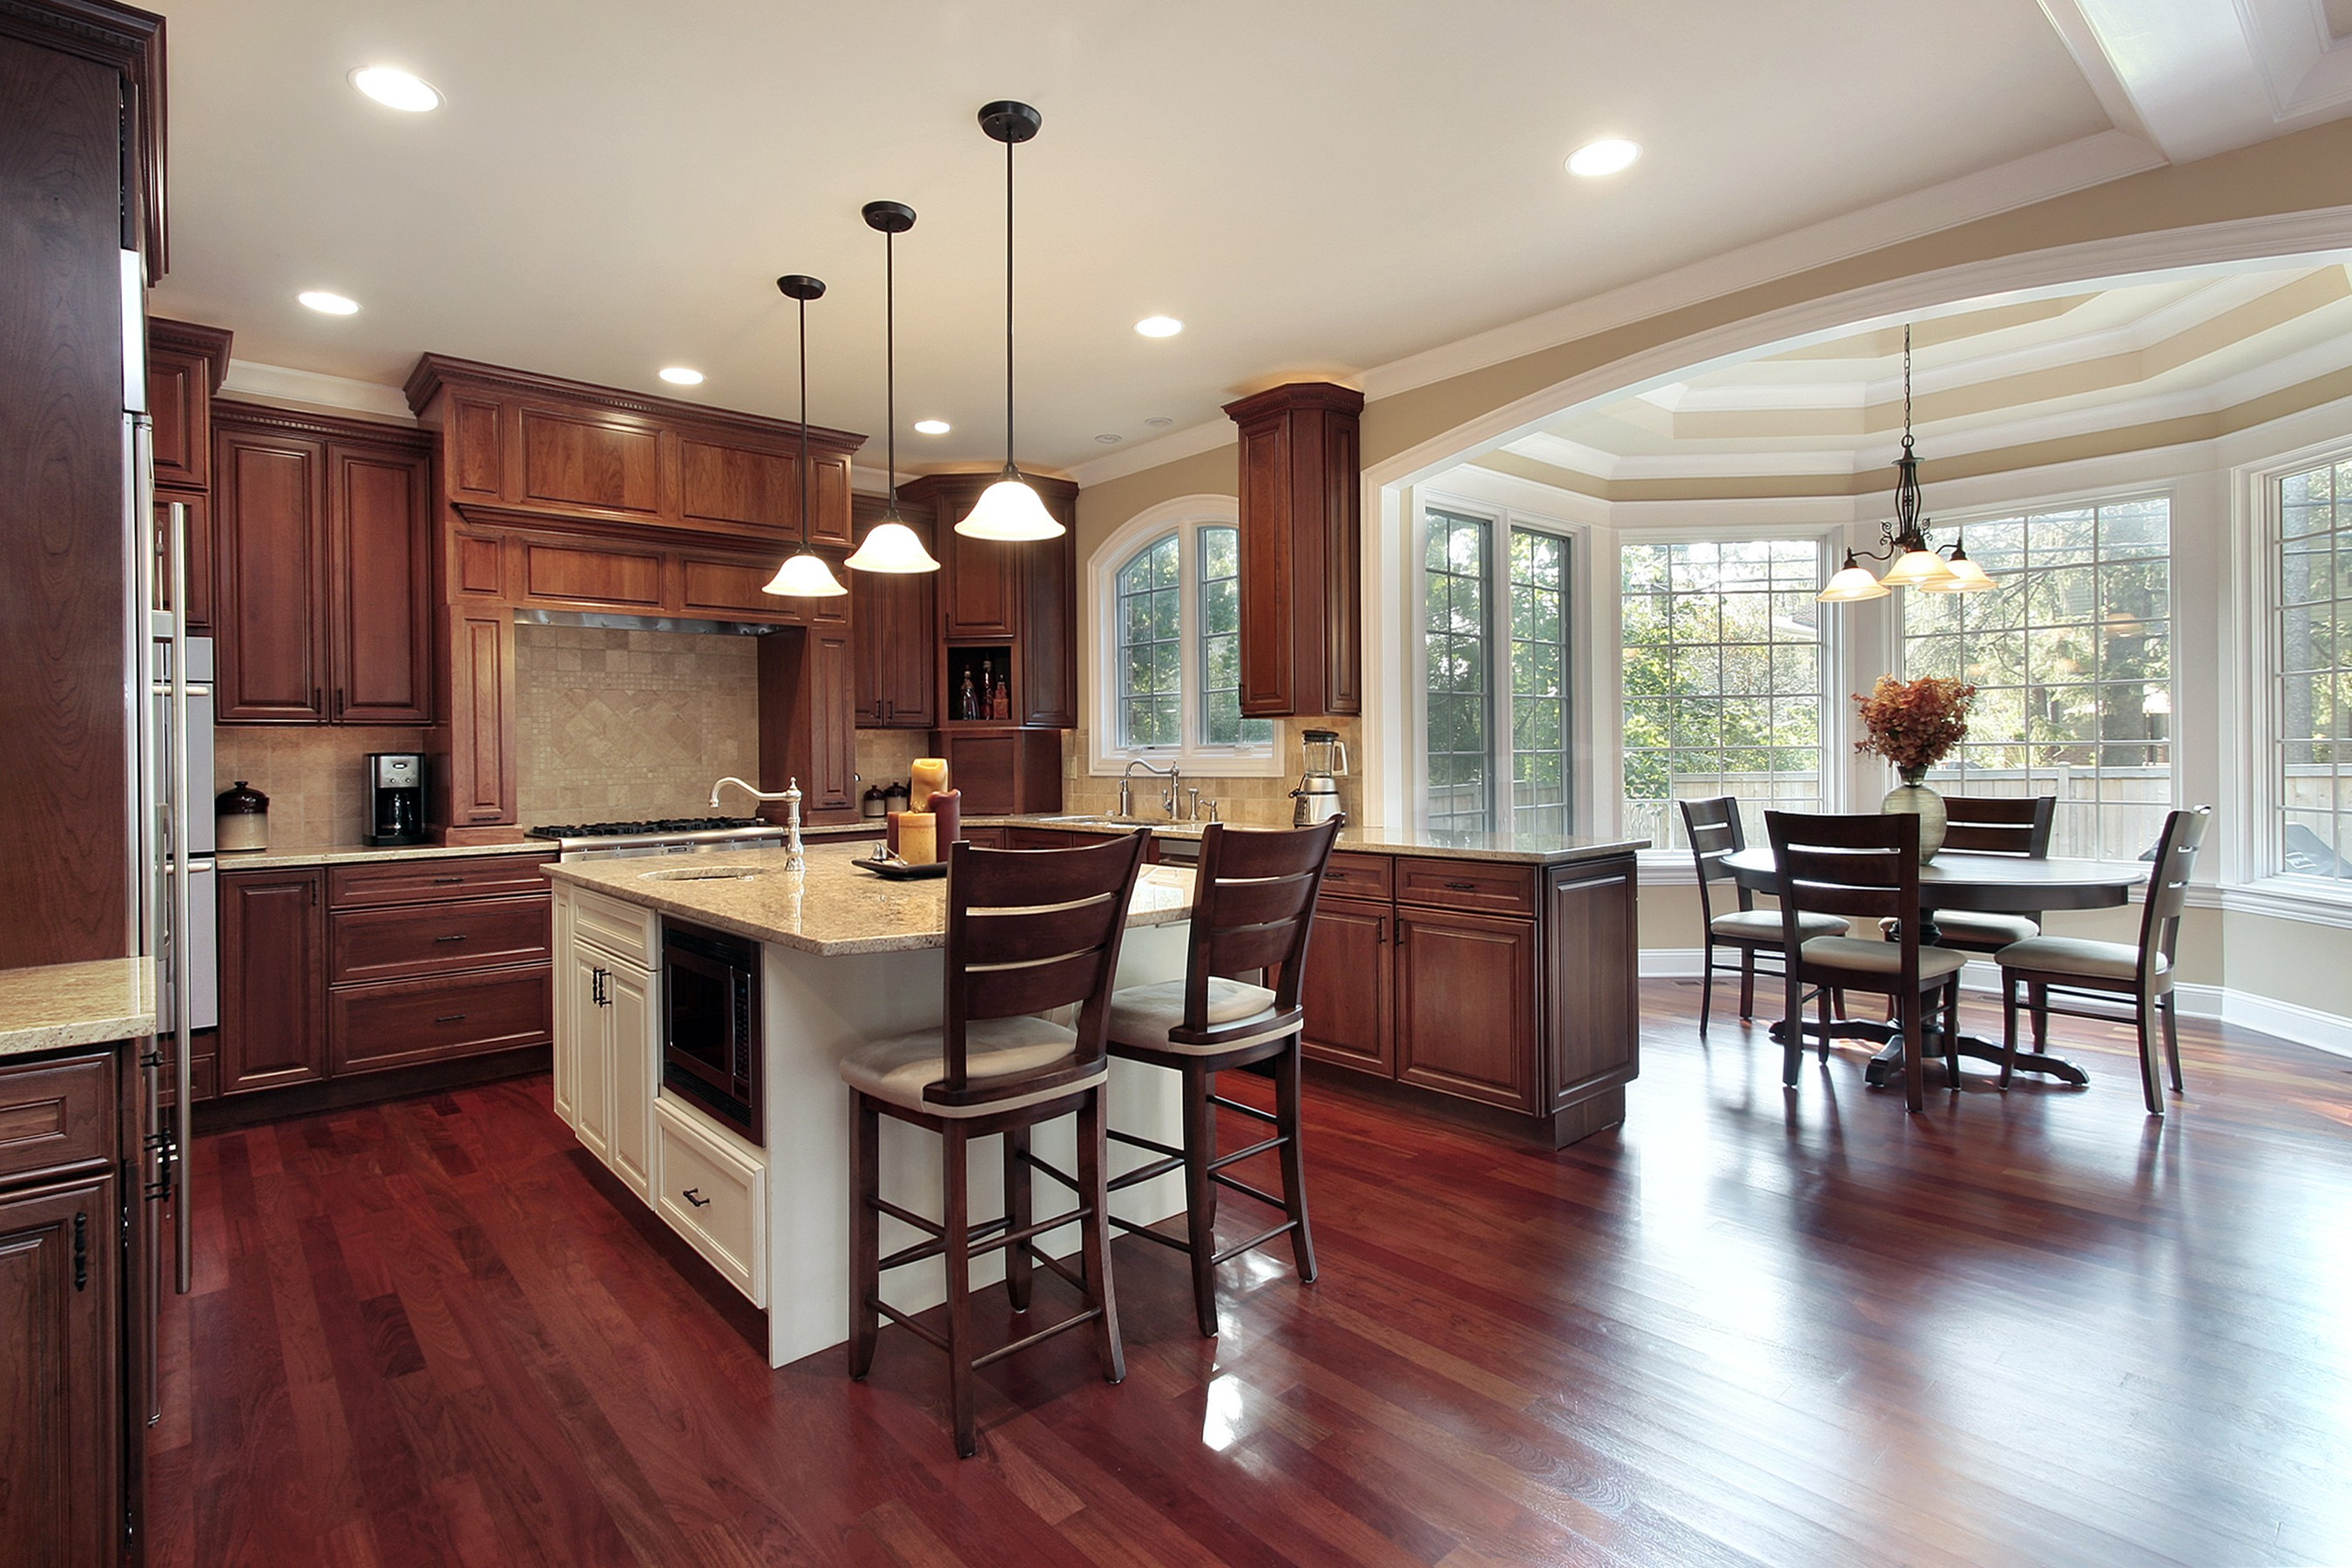 Refinance For Home Improvements